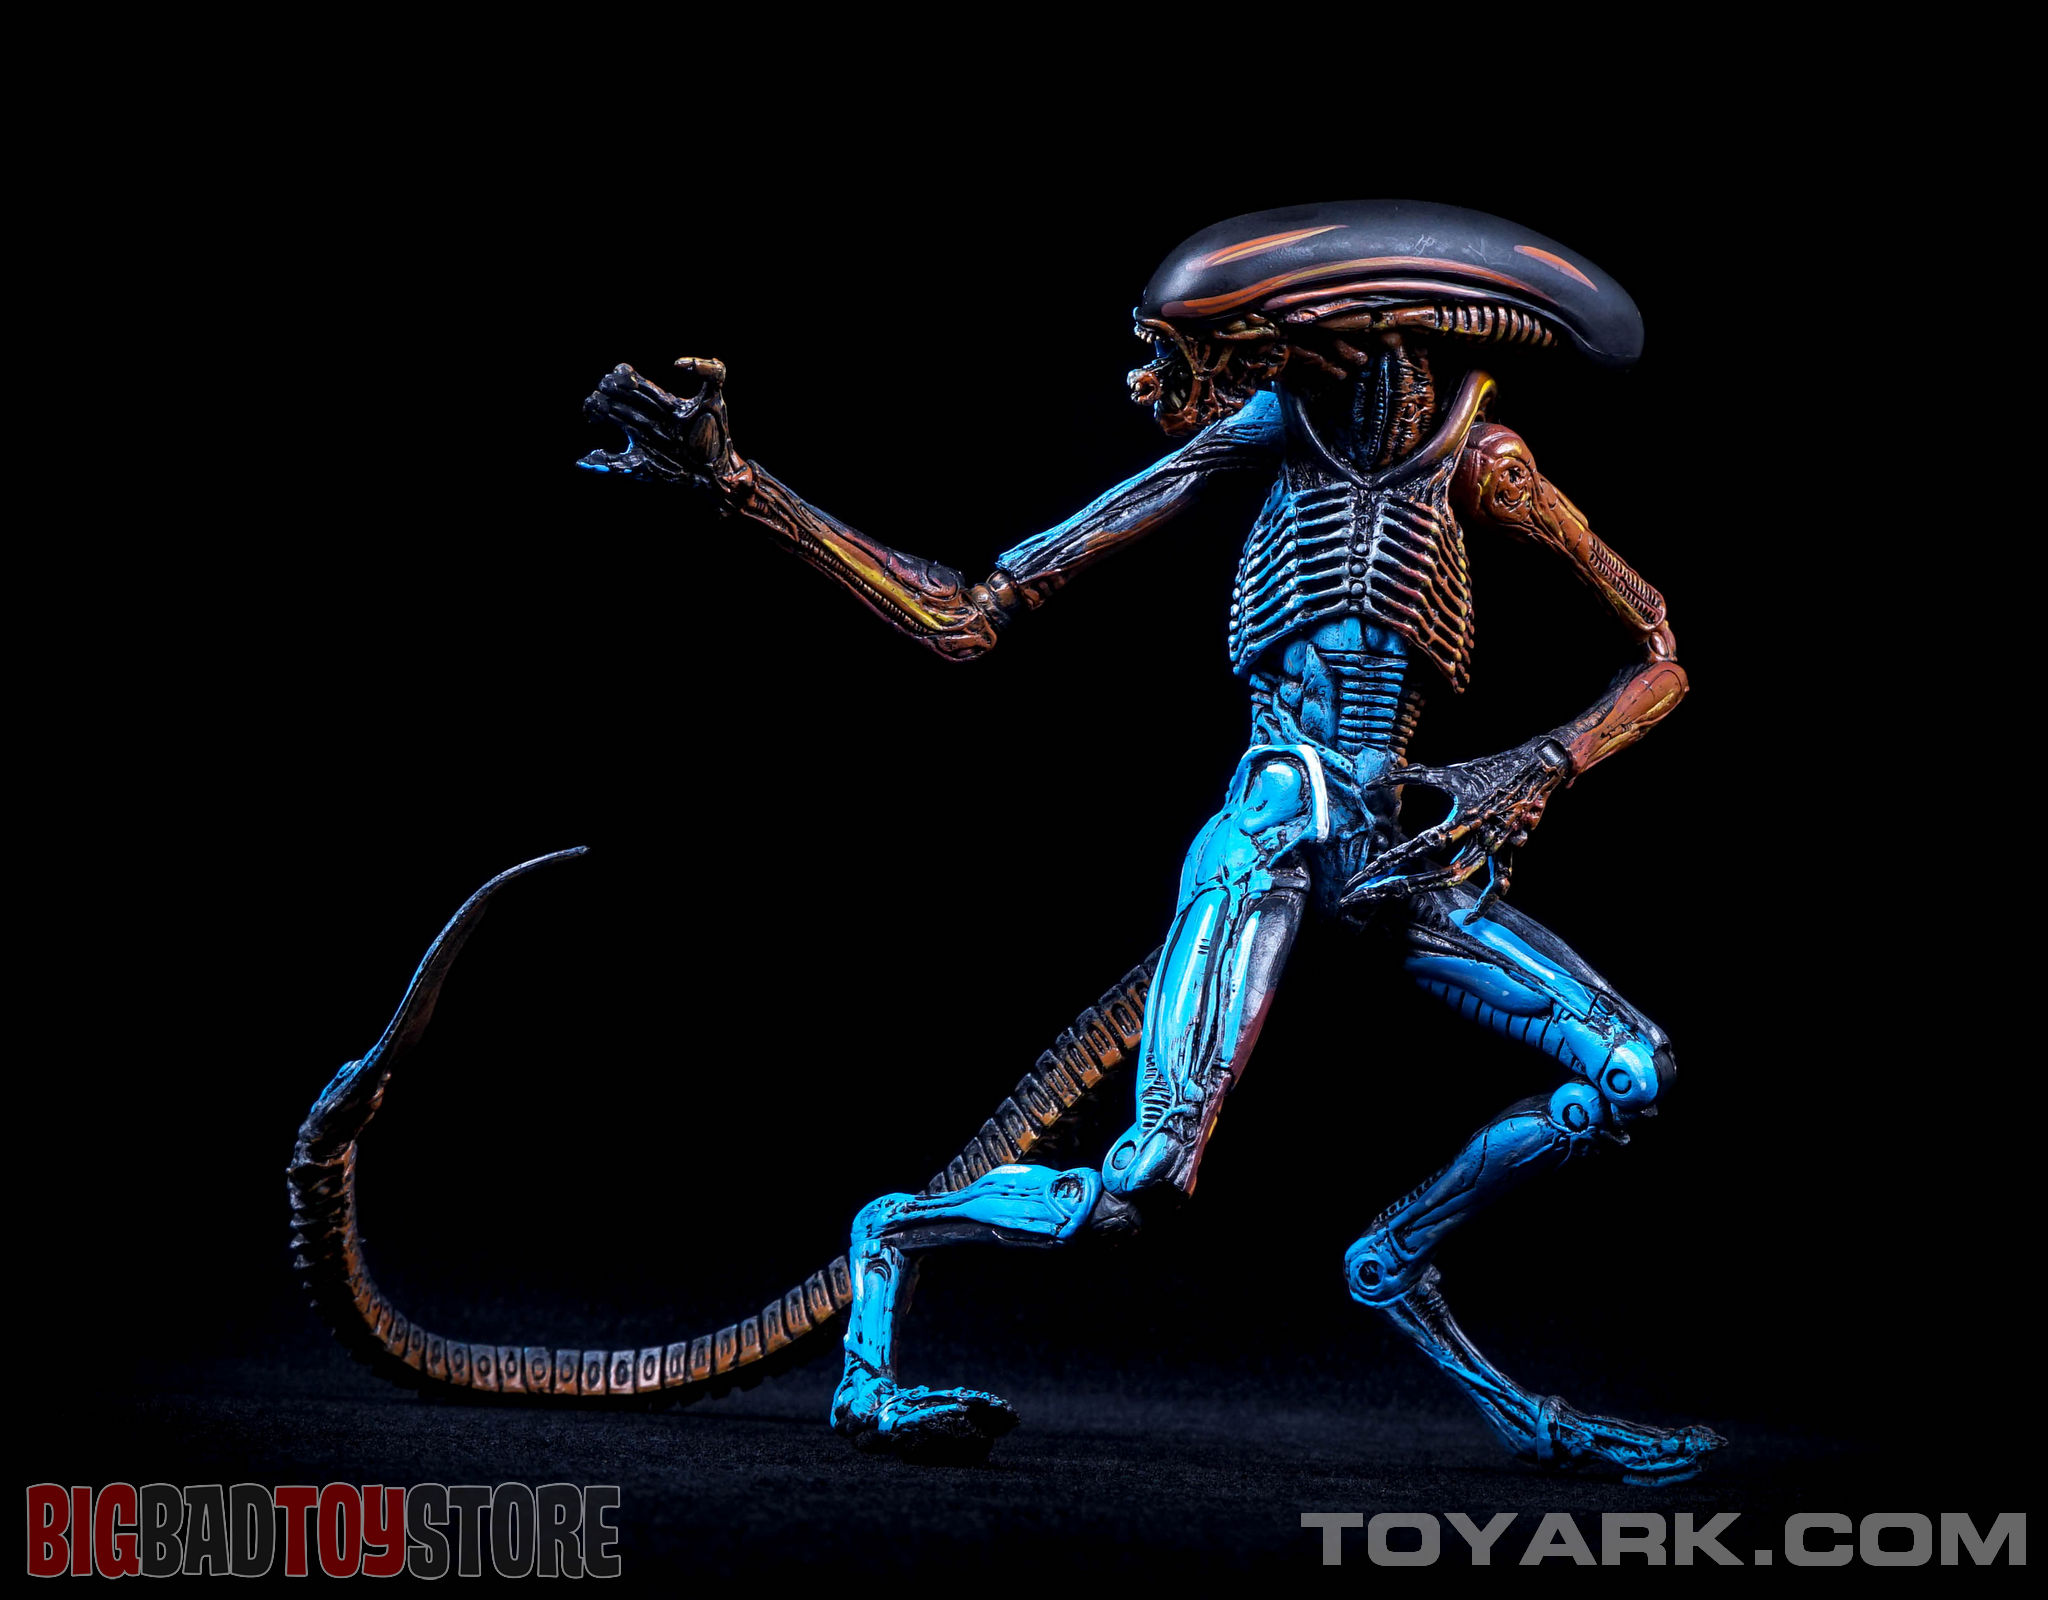 http://news.toyark.com/wp-content/uploads/sites/4/2015/06/NECA-NES-Dog-Alien-038.jpg